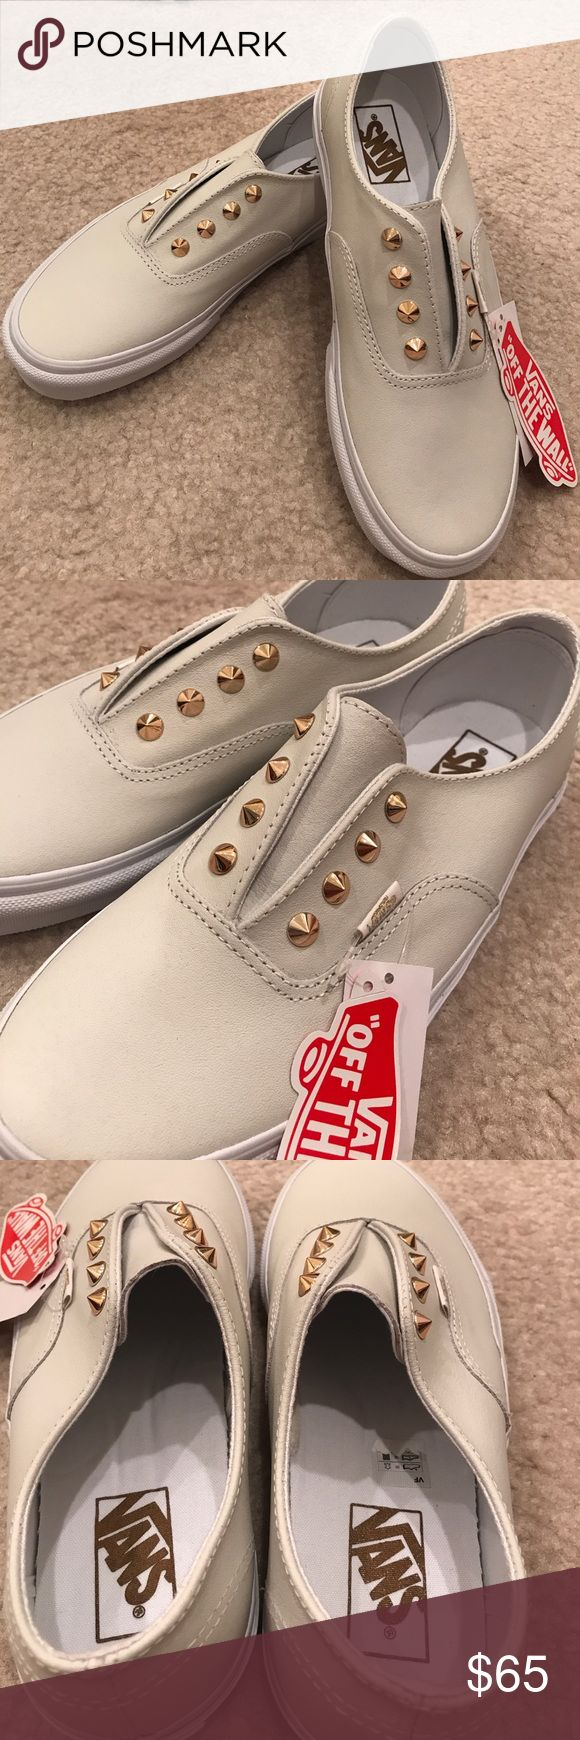 Brand new white leather Vans with gold spikes Not taking any offers...no further discounts! Brand new with no box white leather Vans with gold spikes. Size 7.5. Slip on style. No Trades! Vans Shoes Sneakers